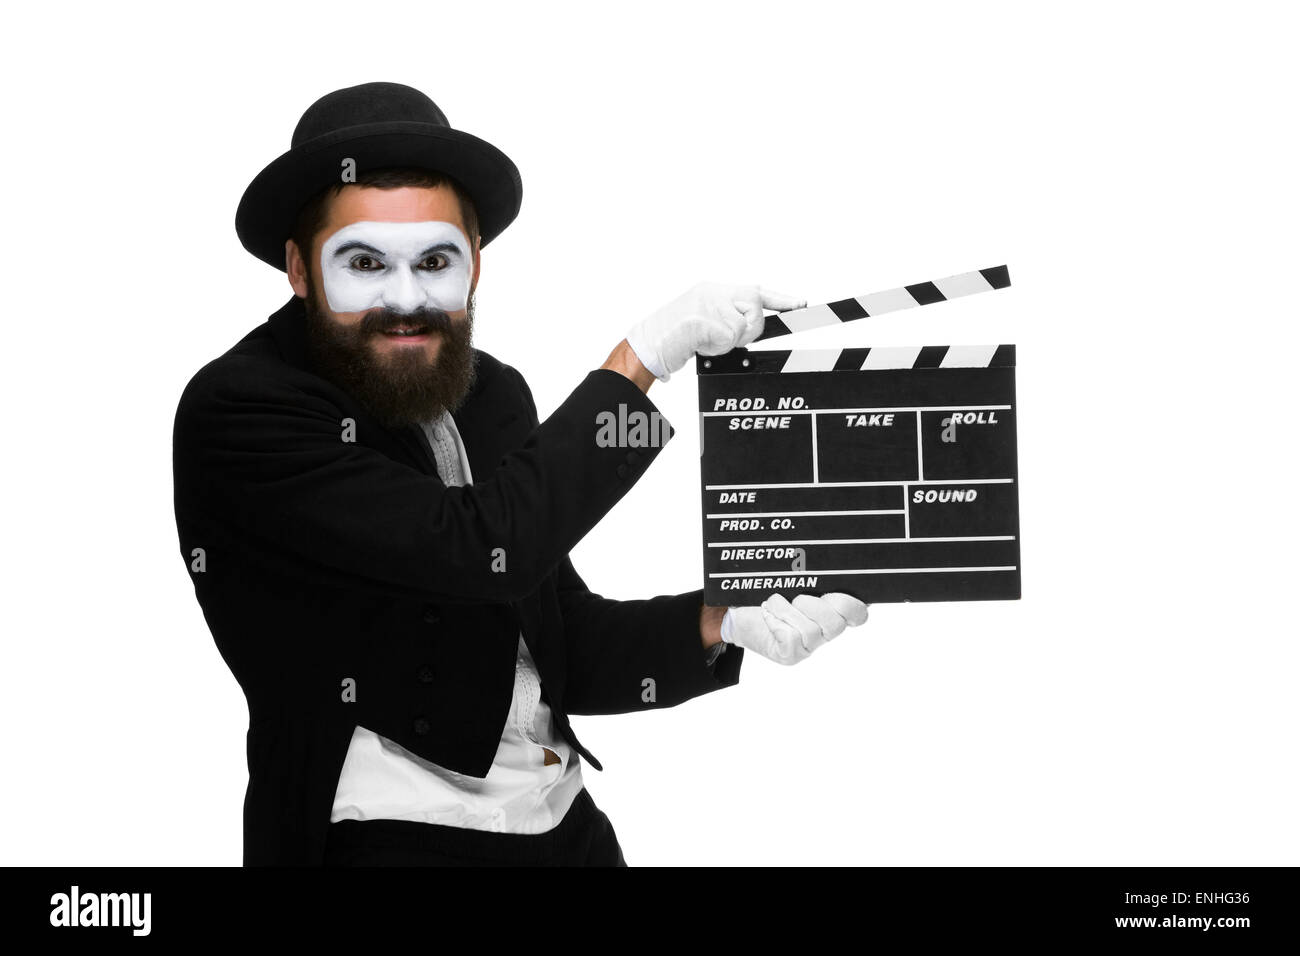 man in the image mime with movie board - Stock Image